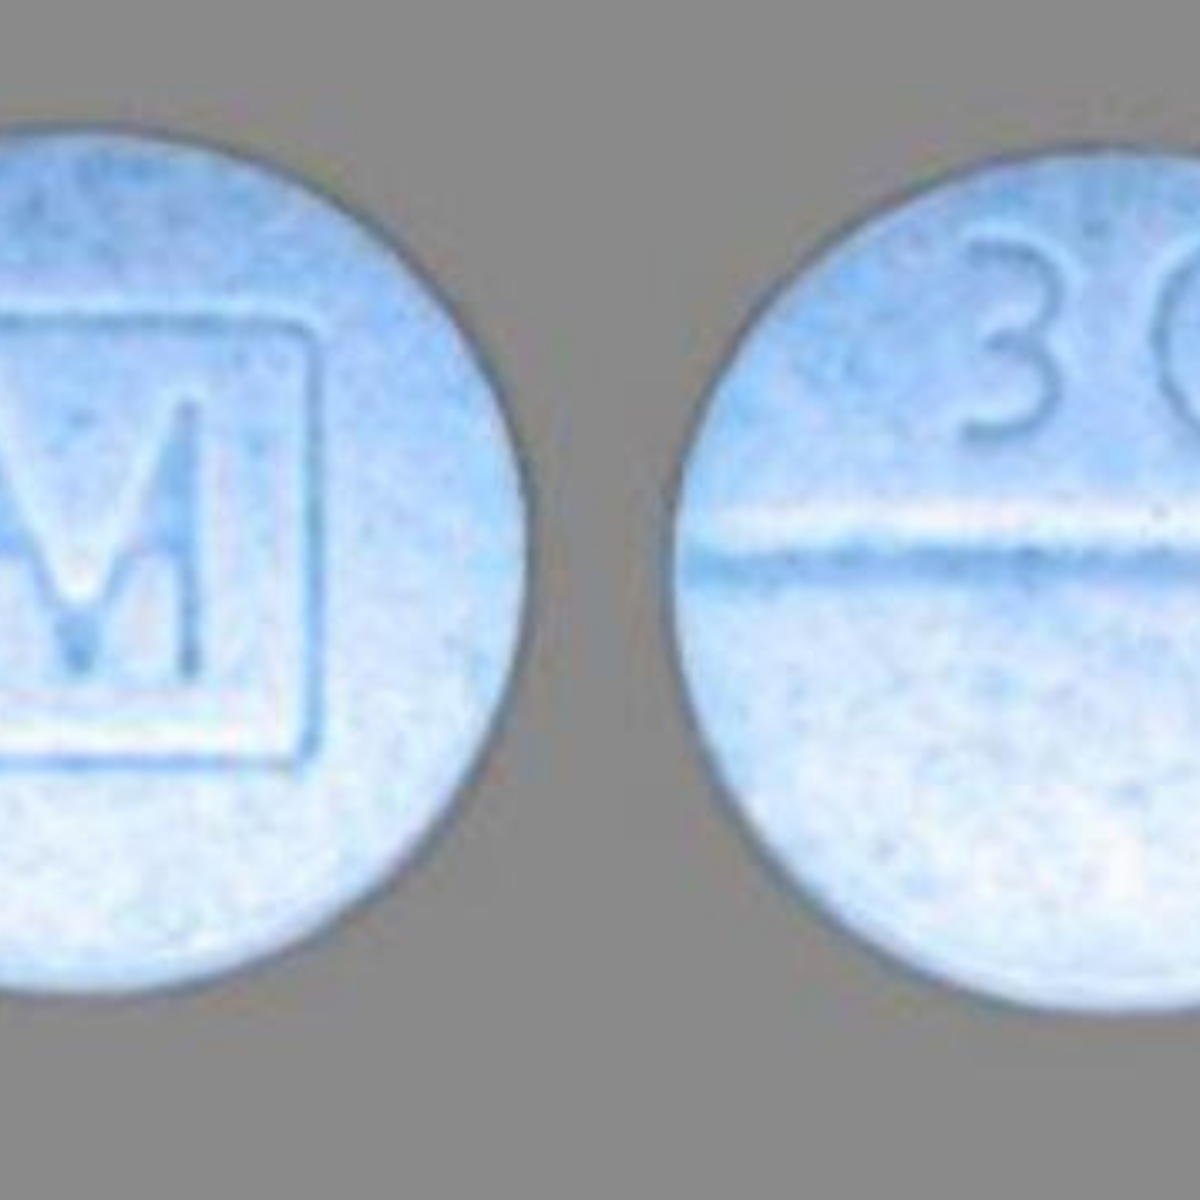 More Arizona teens dying due to counterfeit opioid pills